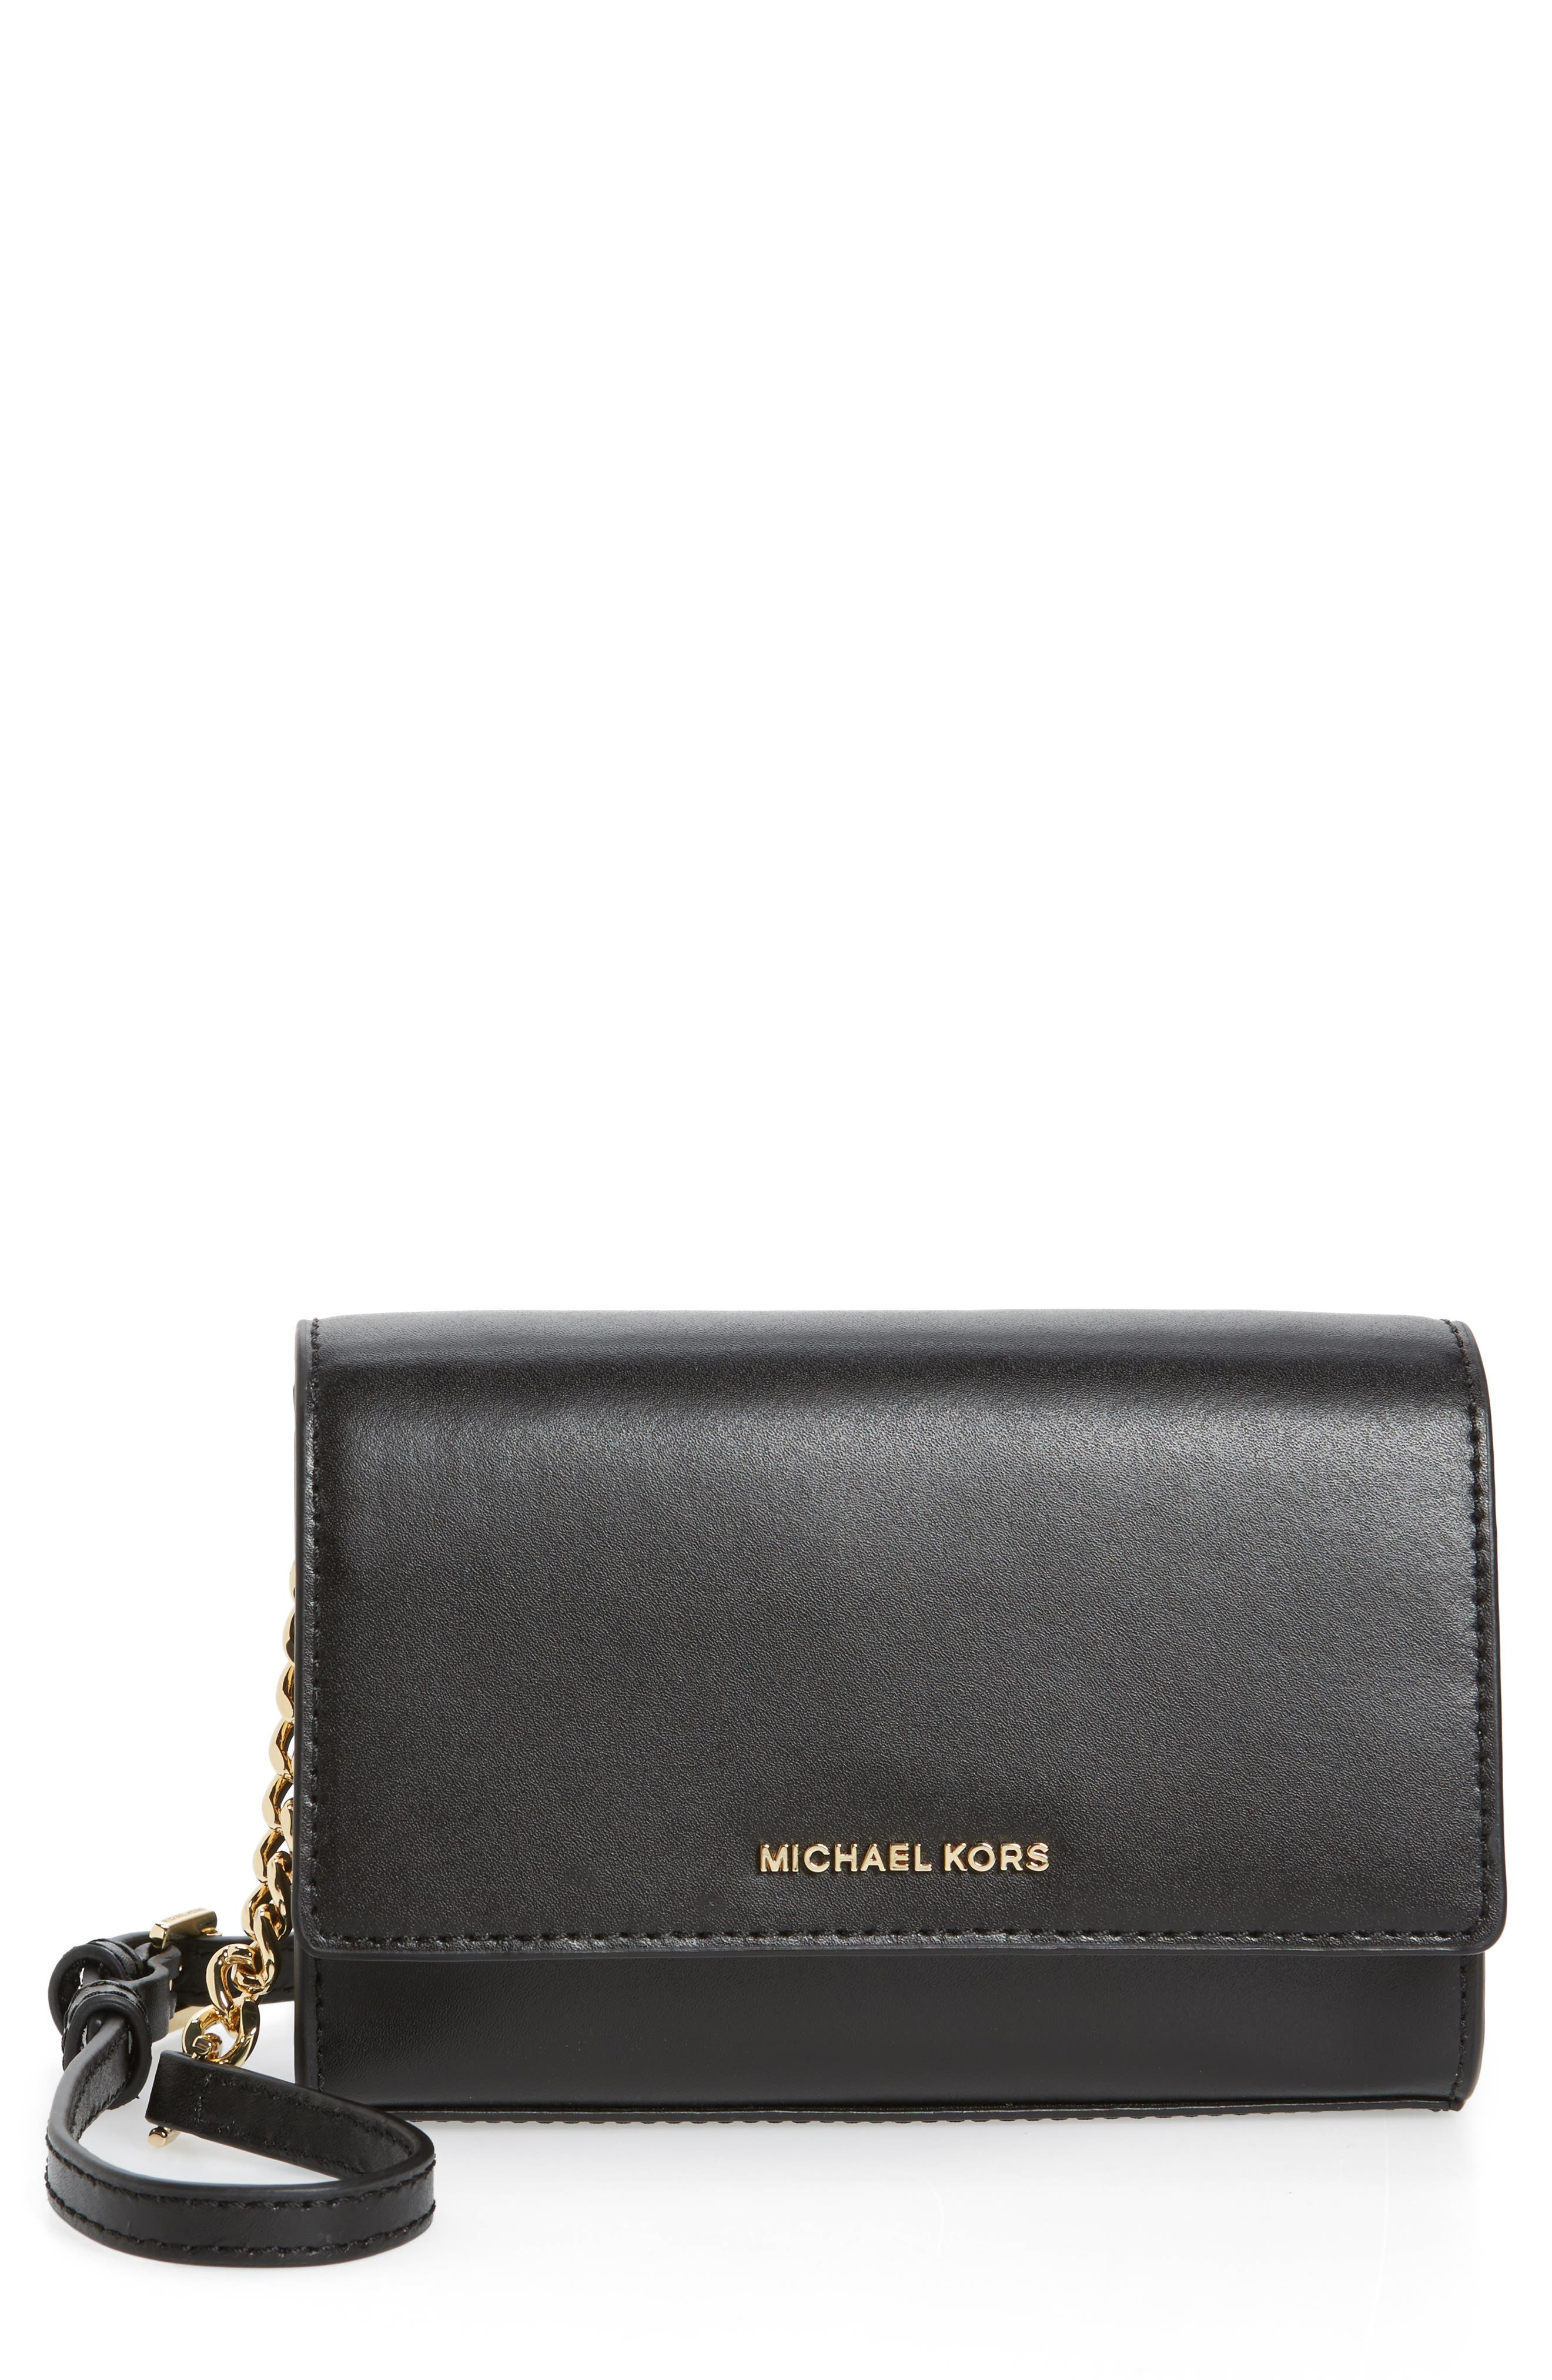 Medium Ruby Convertible Leather Clutch,                         Main,                         color, 001